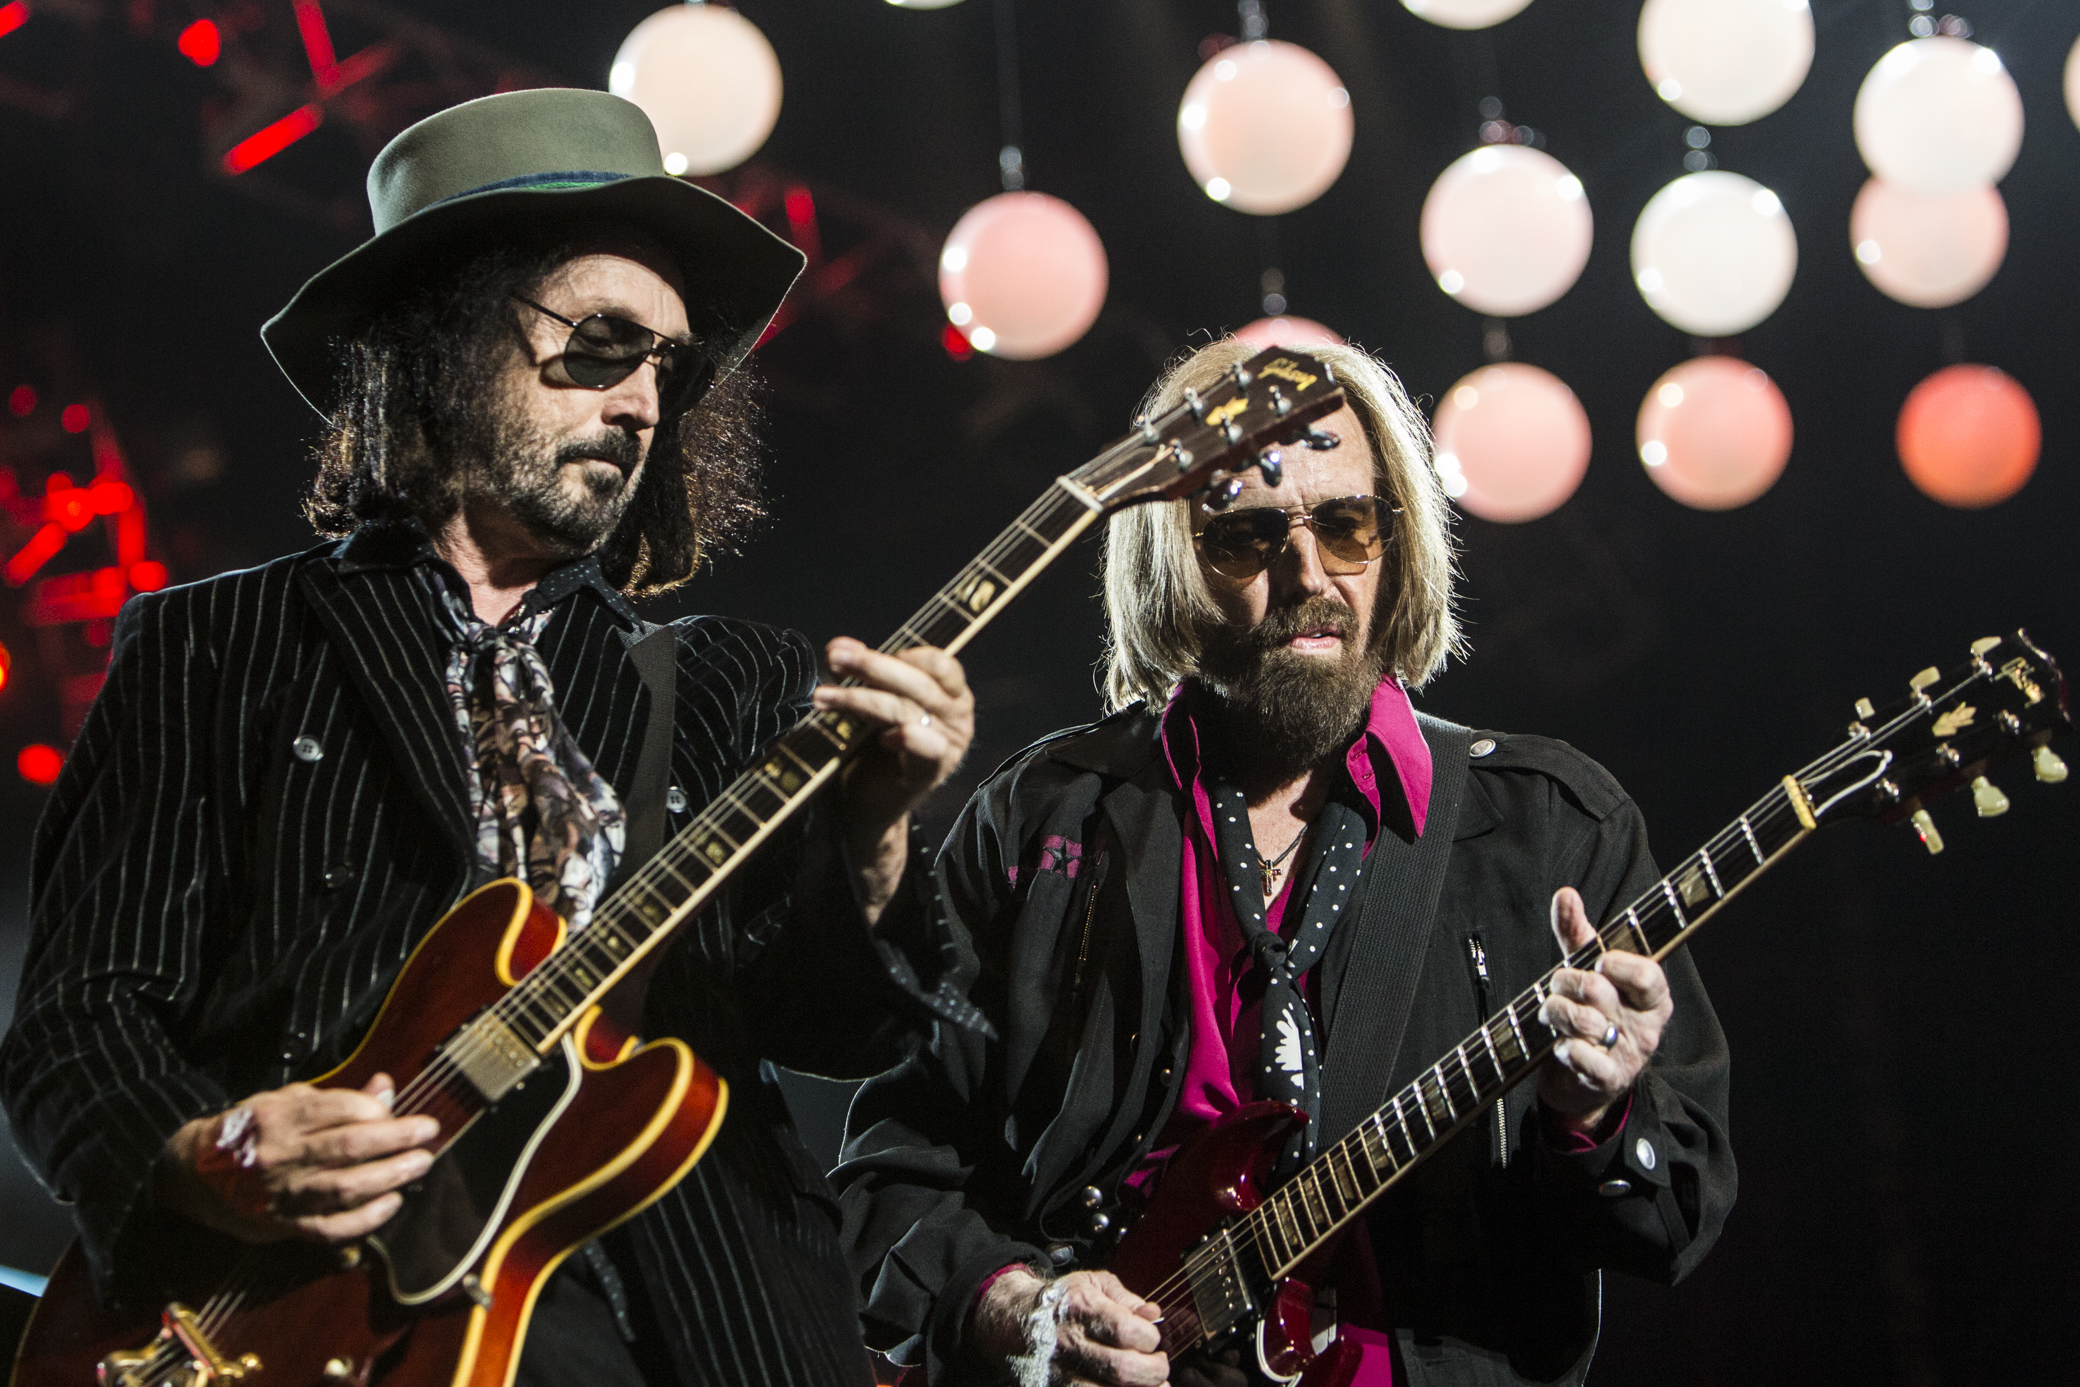 tom petty and the heartbreakers 18 Tom Petty and the Heartbreakers.18